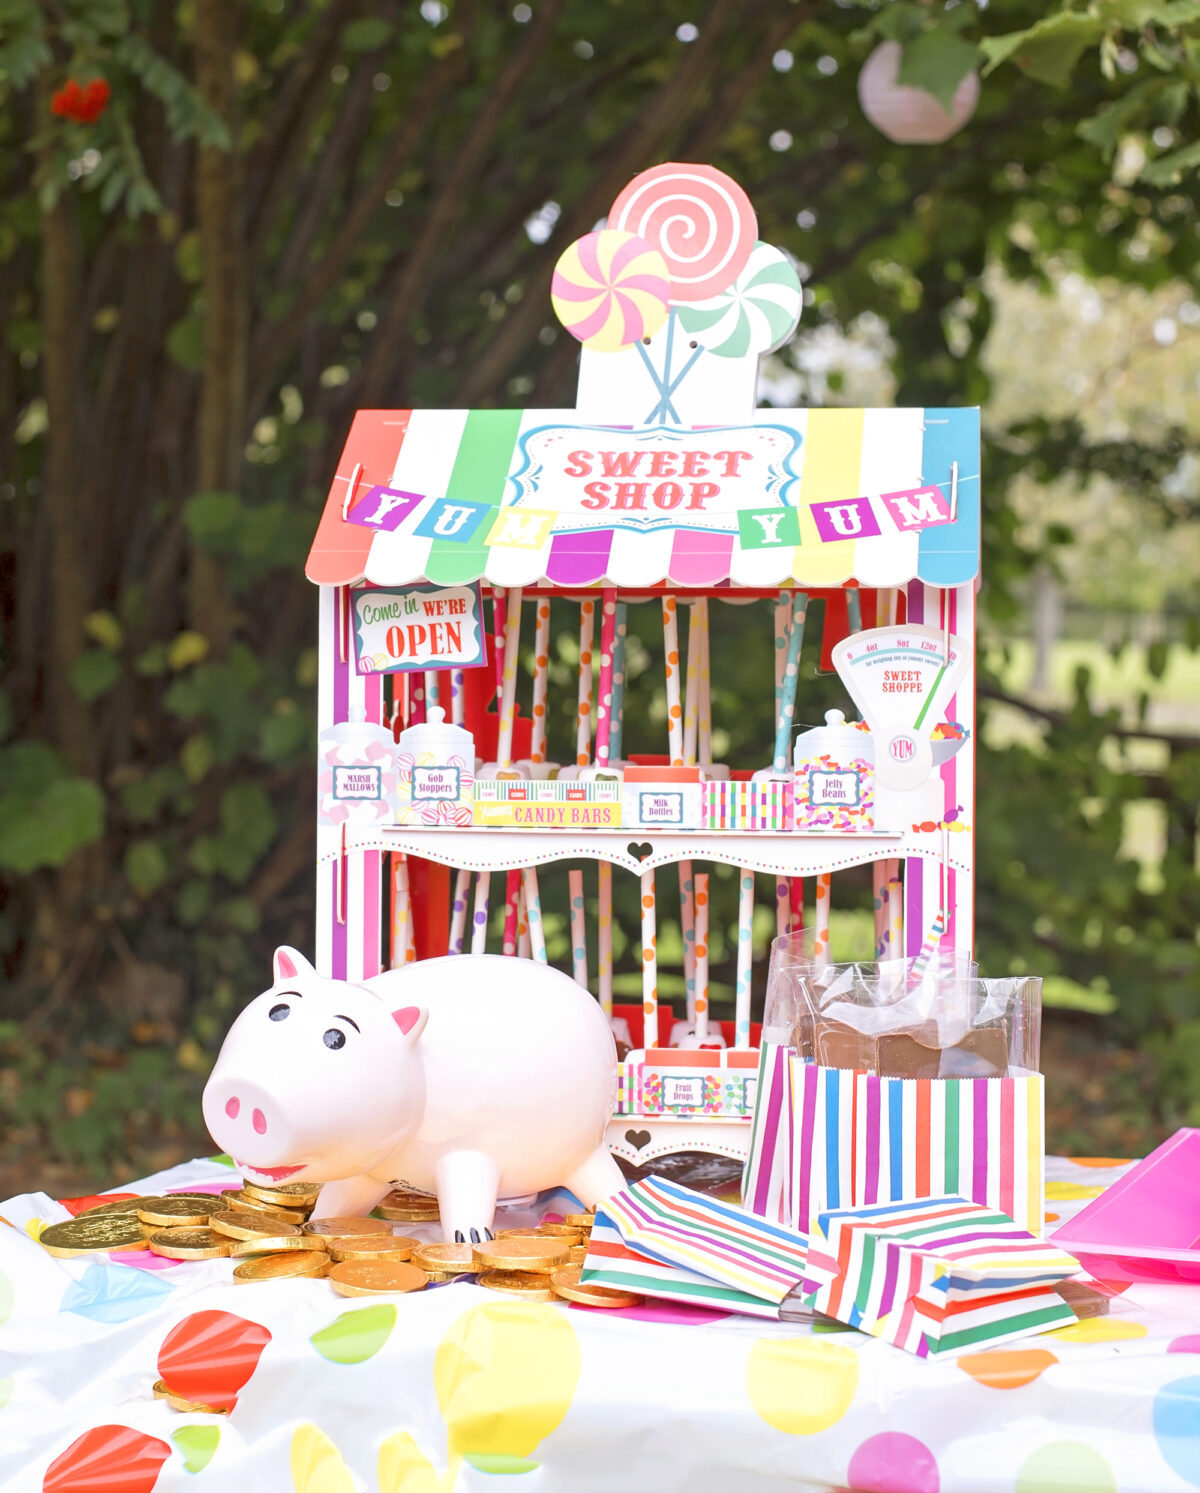 Image shows a ceramic piggy bank in the shame of Hamm from Disney's Toy Story sat on top of a mountain of gold chocolate coins. In the background is a novelty sweet stand filled with chocolate dipped marshmallow pops and in the foreground are chocolate carnival tickets.